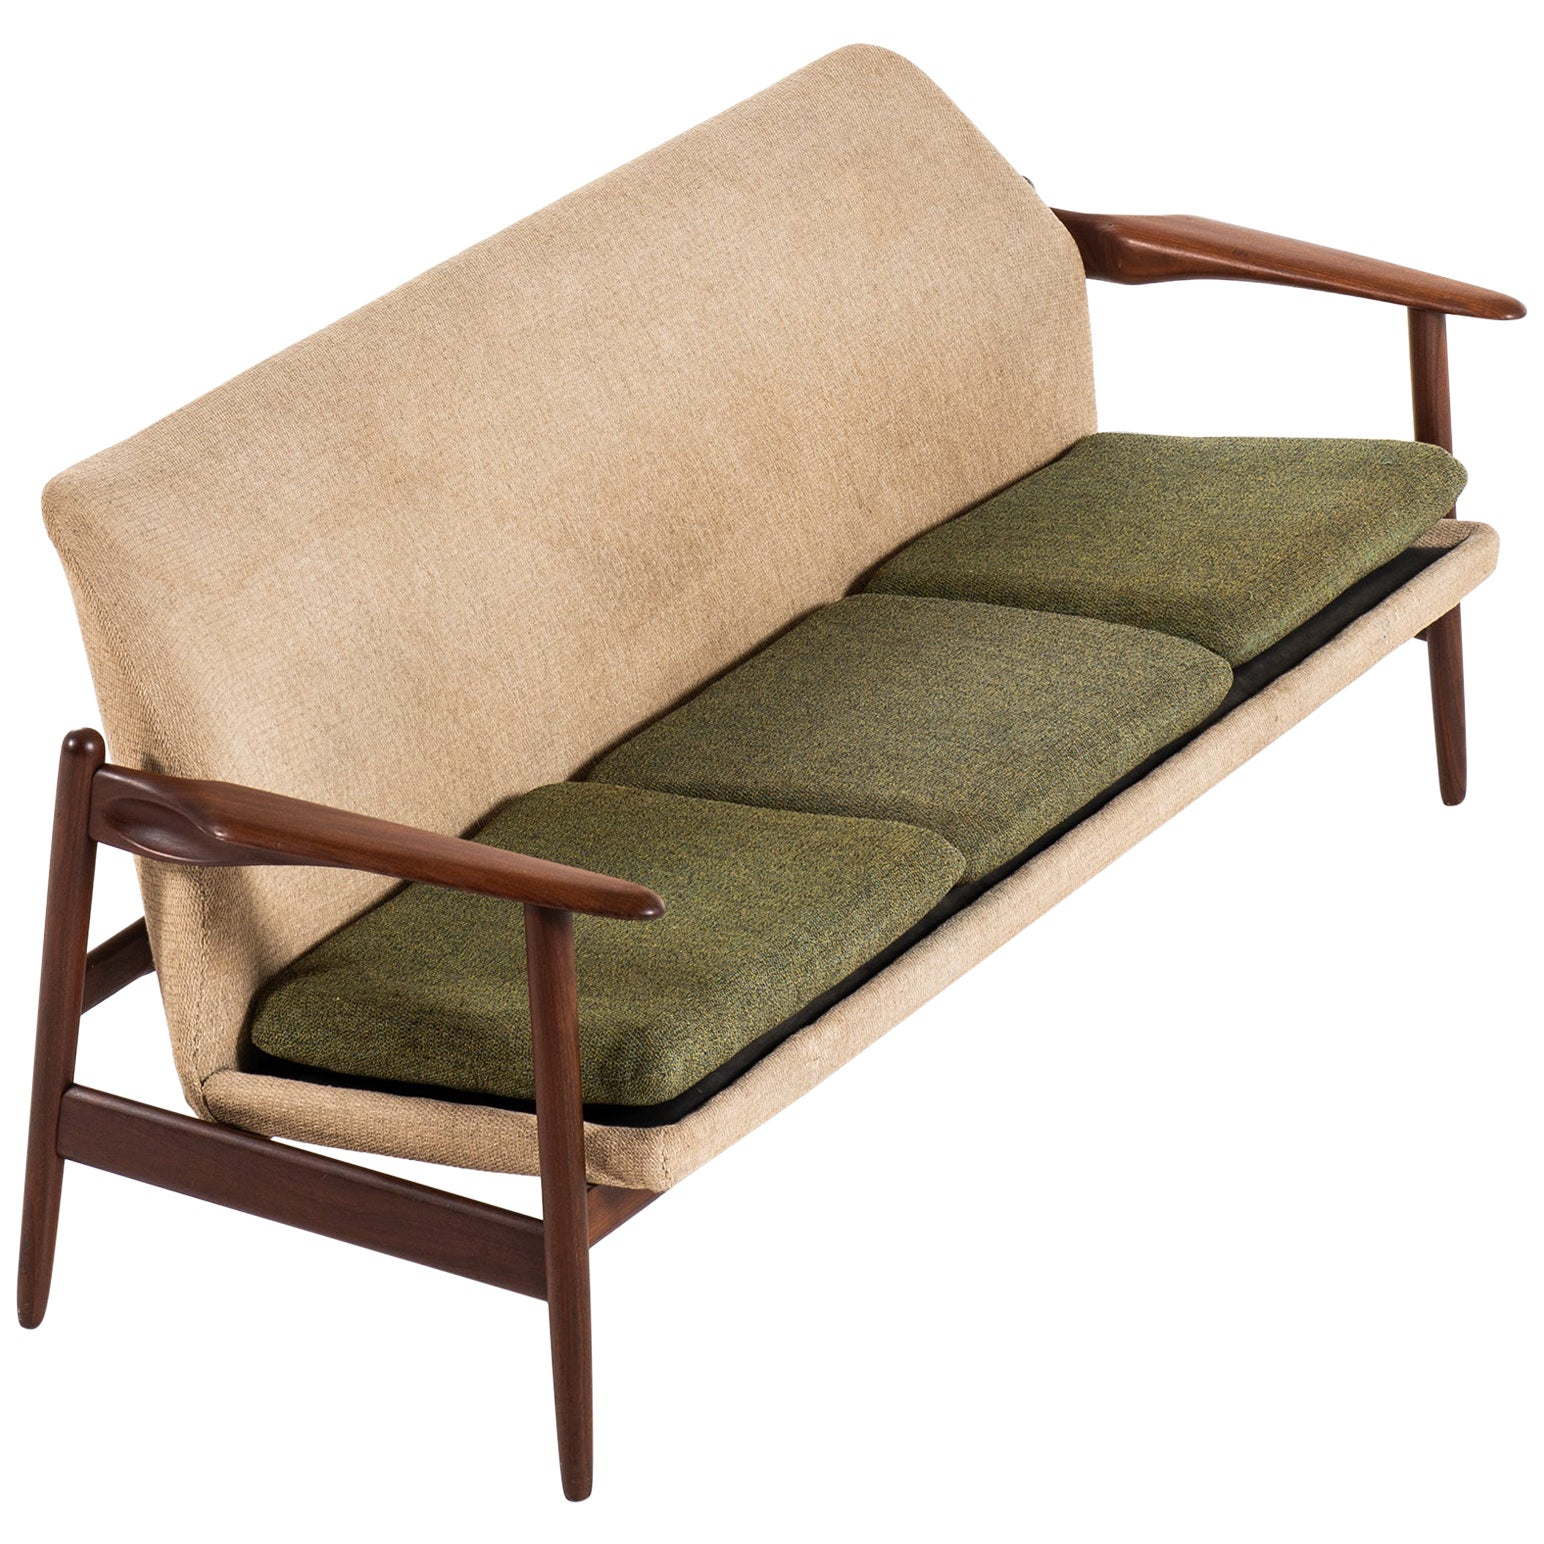 Scandinavian Sofa in Teak and Fabric Produced in Denmark